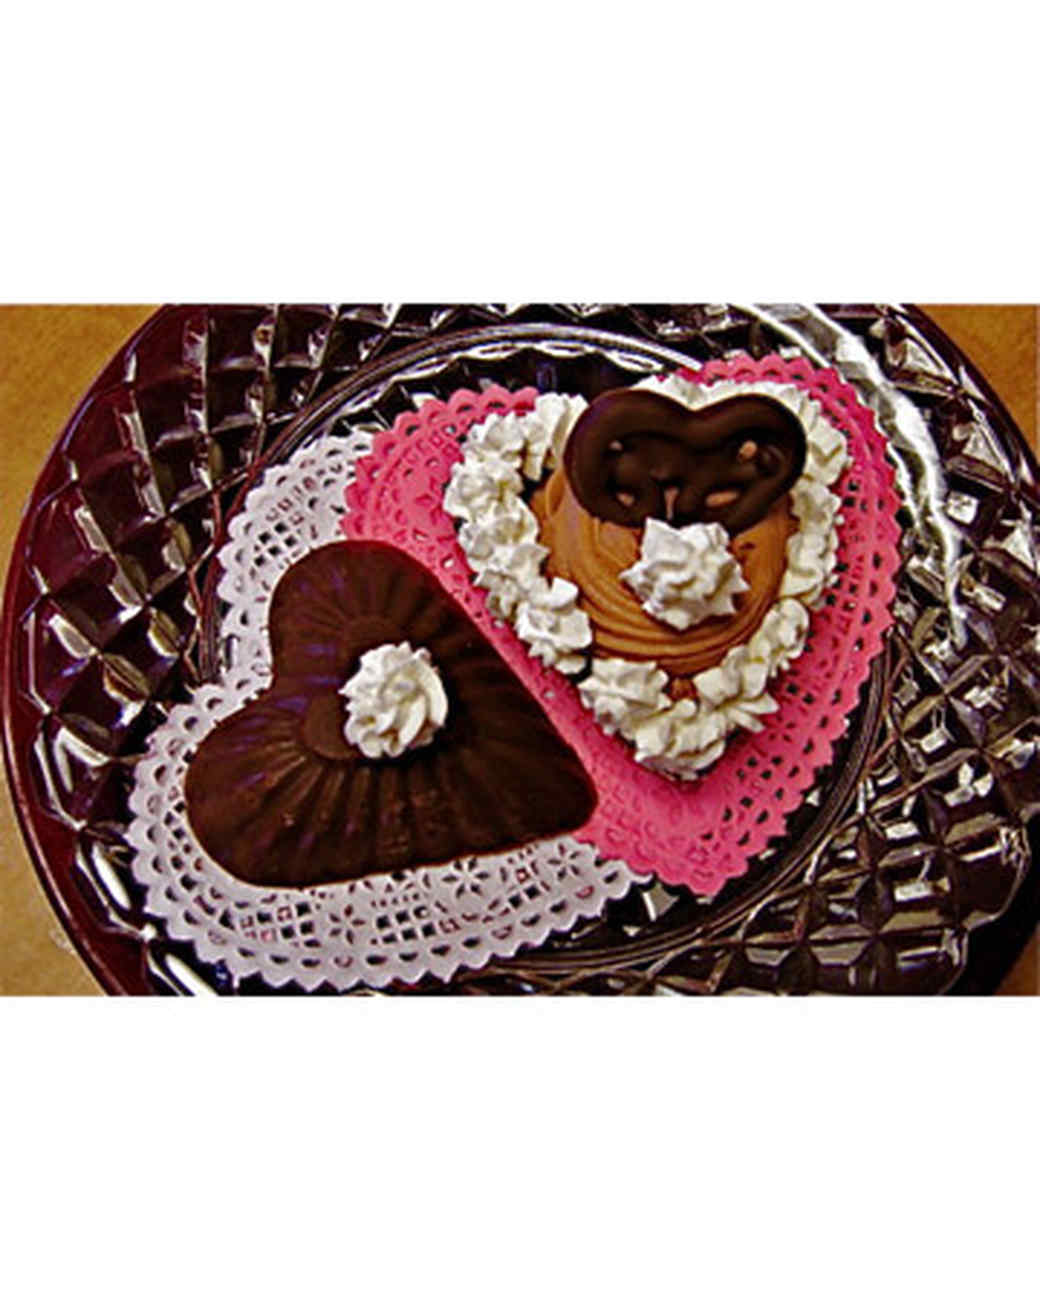 vday_treat_ugc09_choco_cheesecake_heart.jpg